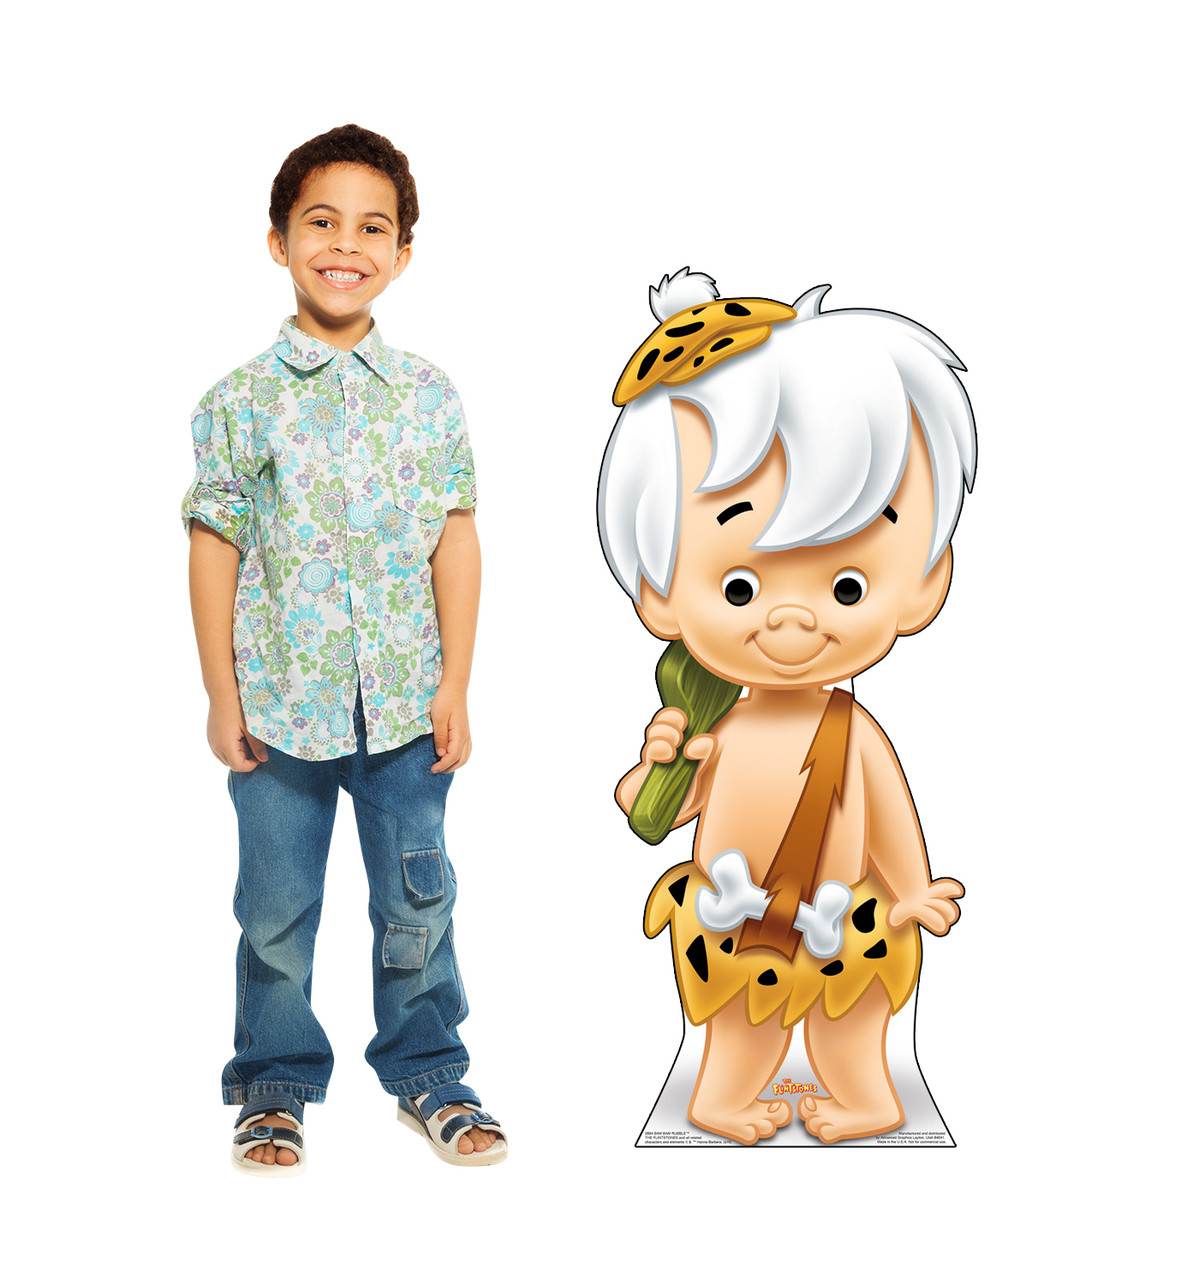 Life-size cardboard standee of Bam Bam Rubble with model.